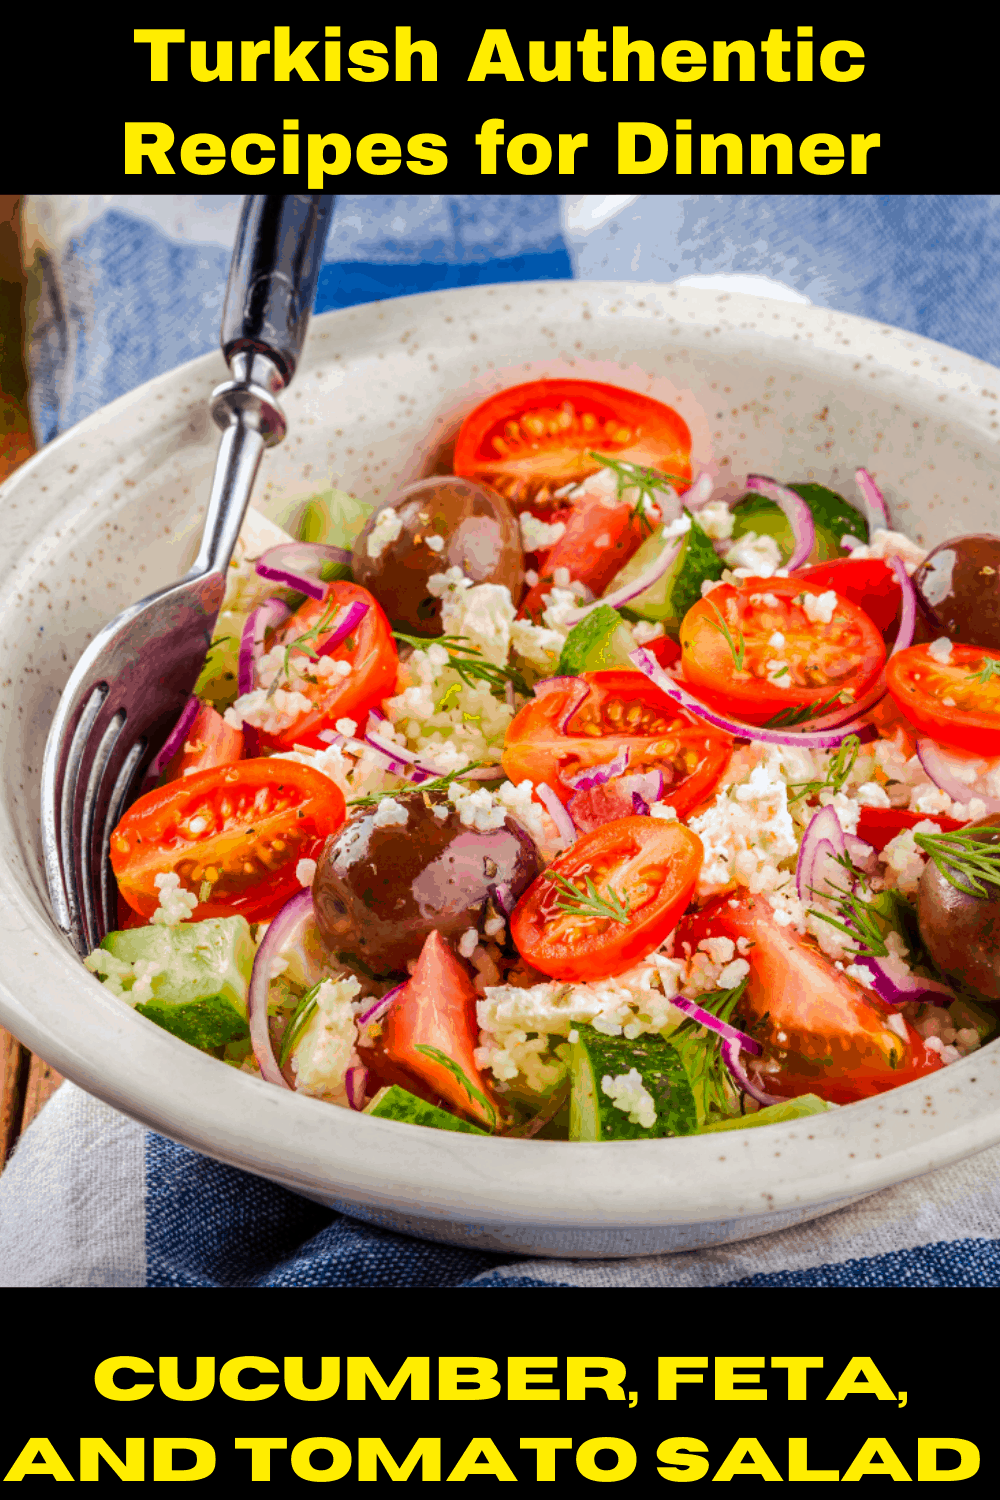 Turkish Authentic Recipes for Dinner - Cucumber, Feta, and Tomato Salad